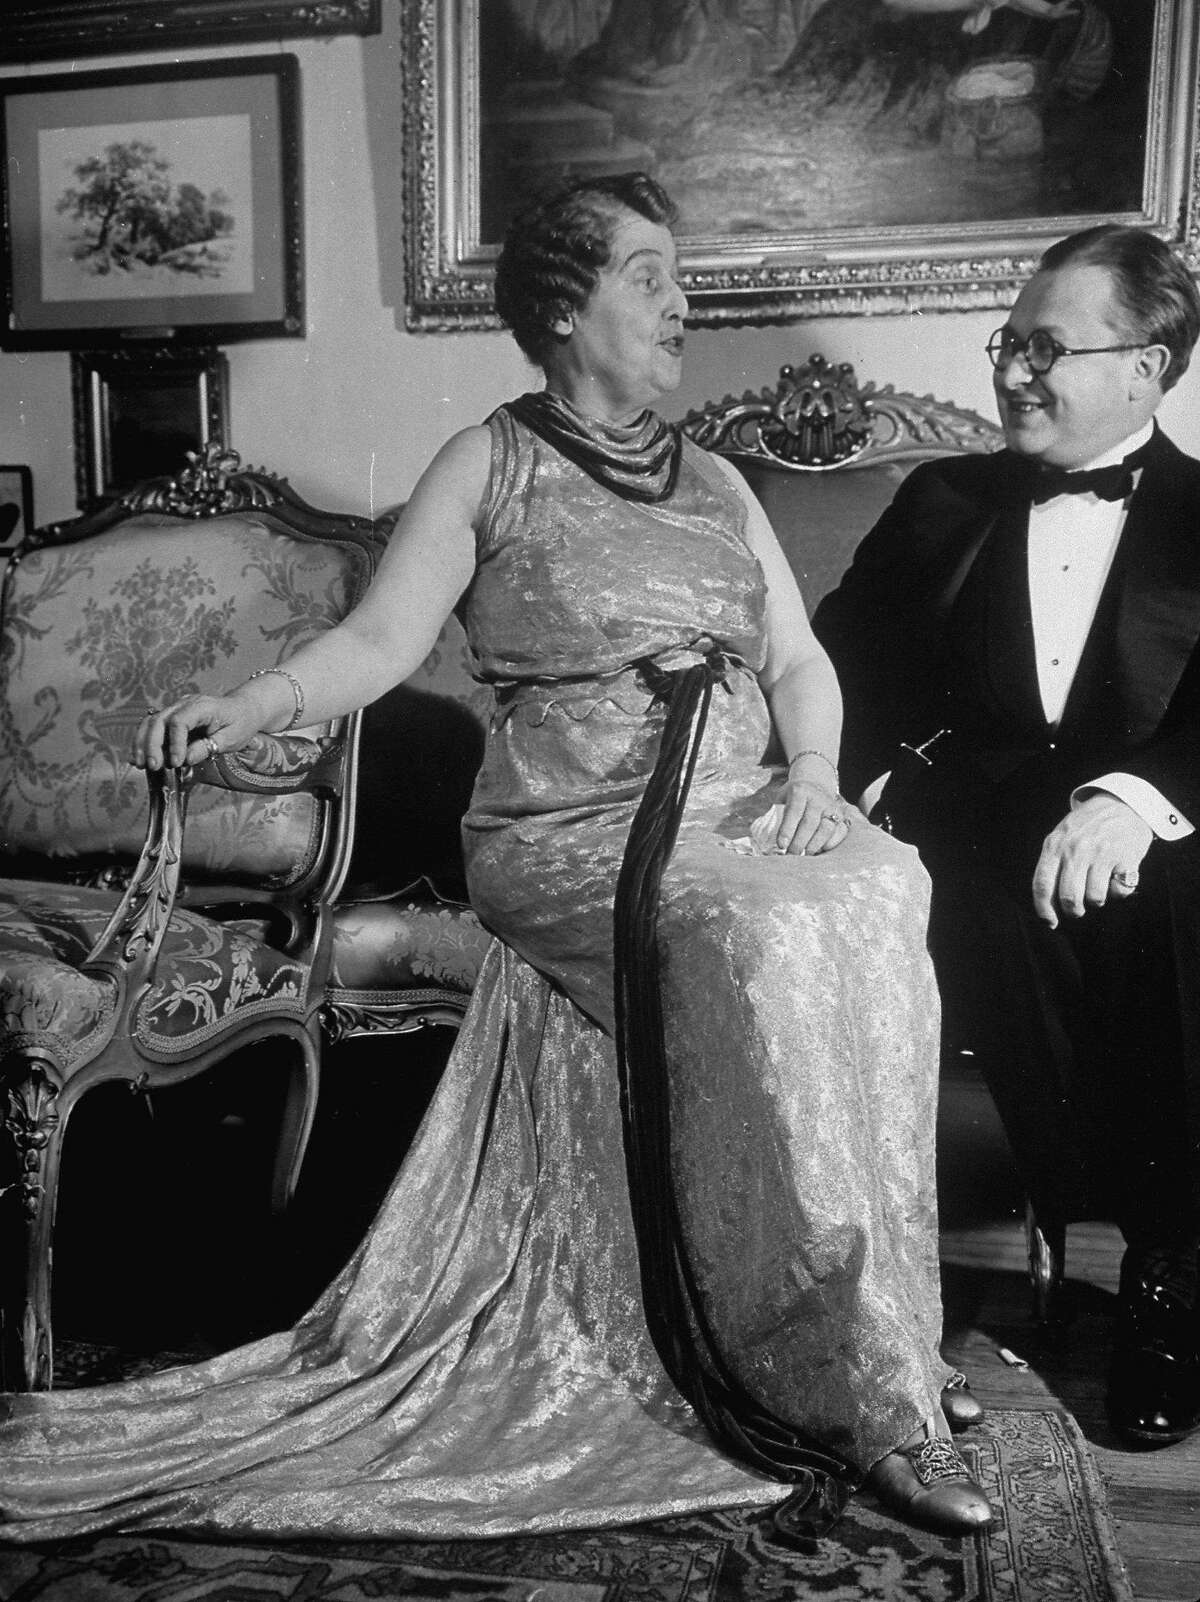 American socialite and amateur soprano vocalist Florence Foster Jenkins (1868 - 1944) talks with an unidentified guest at a formal event in her home, 1937. Foster was known (and loved) primarily for her almost complete lack of vocal skill.